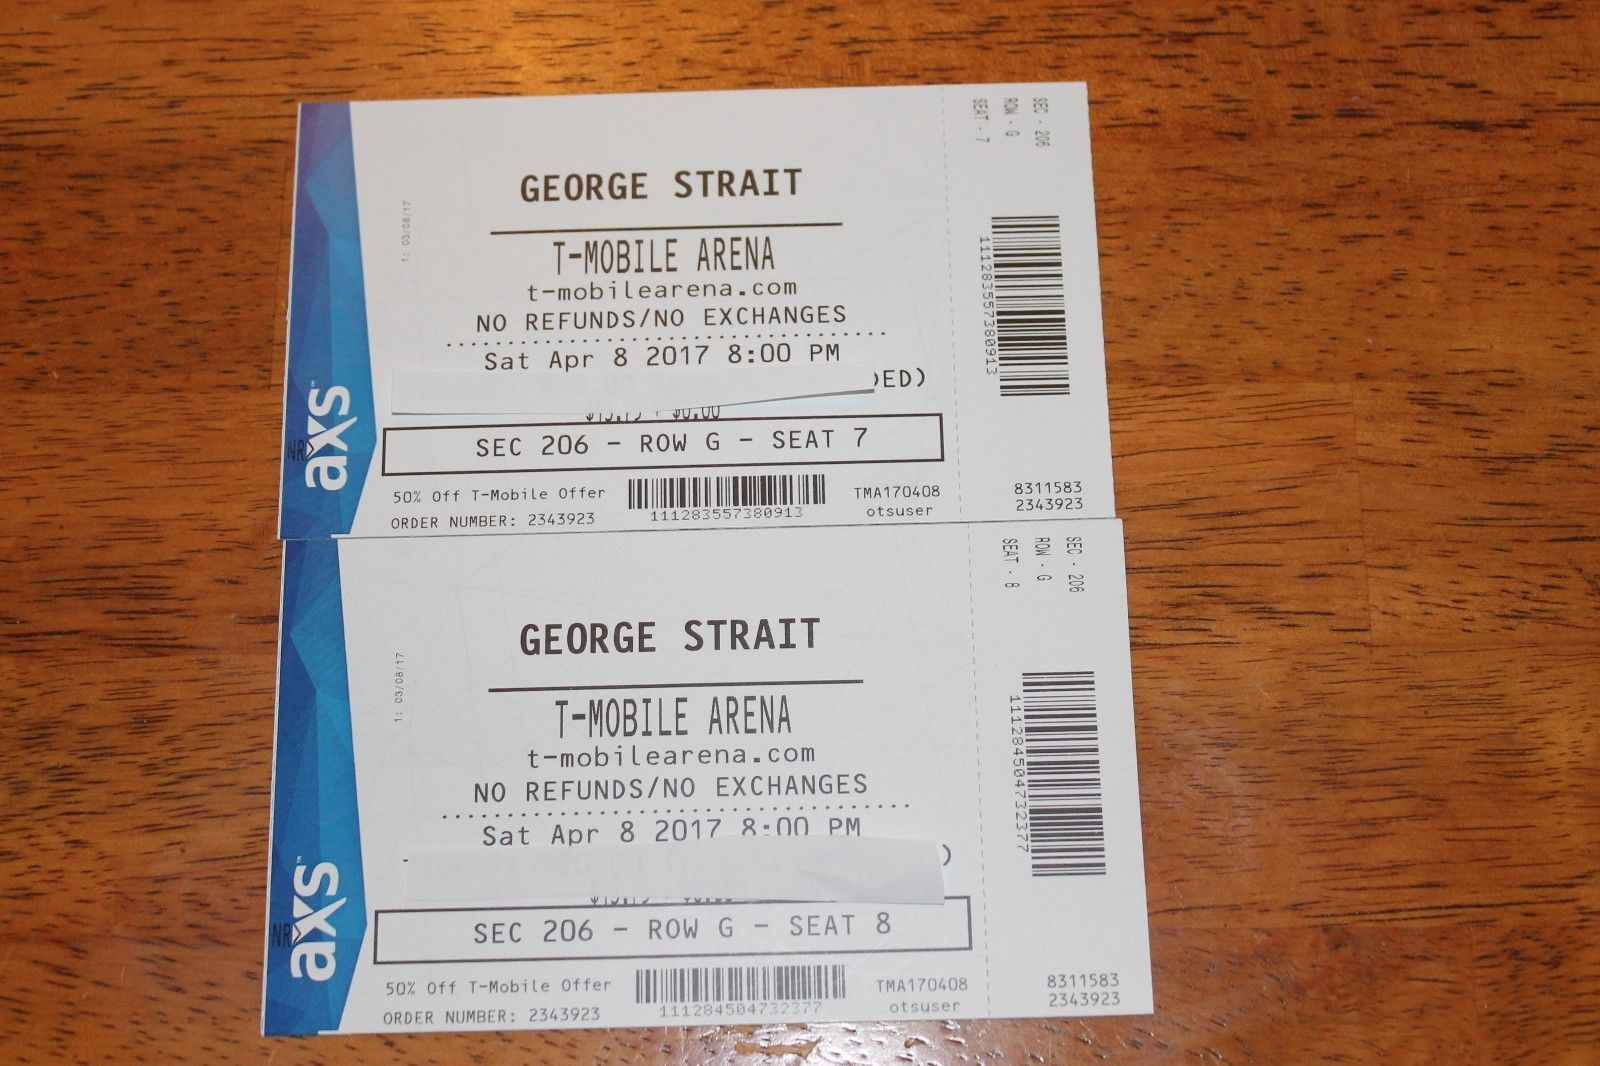 Tickets 2 George Strait Tickets 4 08 17 T Mobile Arena Sec 206 4 8 17 Las Vegas Nv Tickets George Strait Las Vega Nv Straits